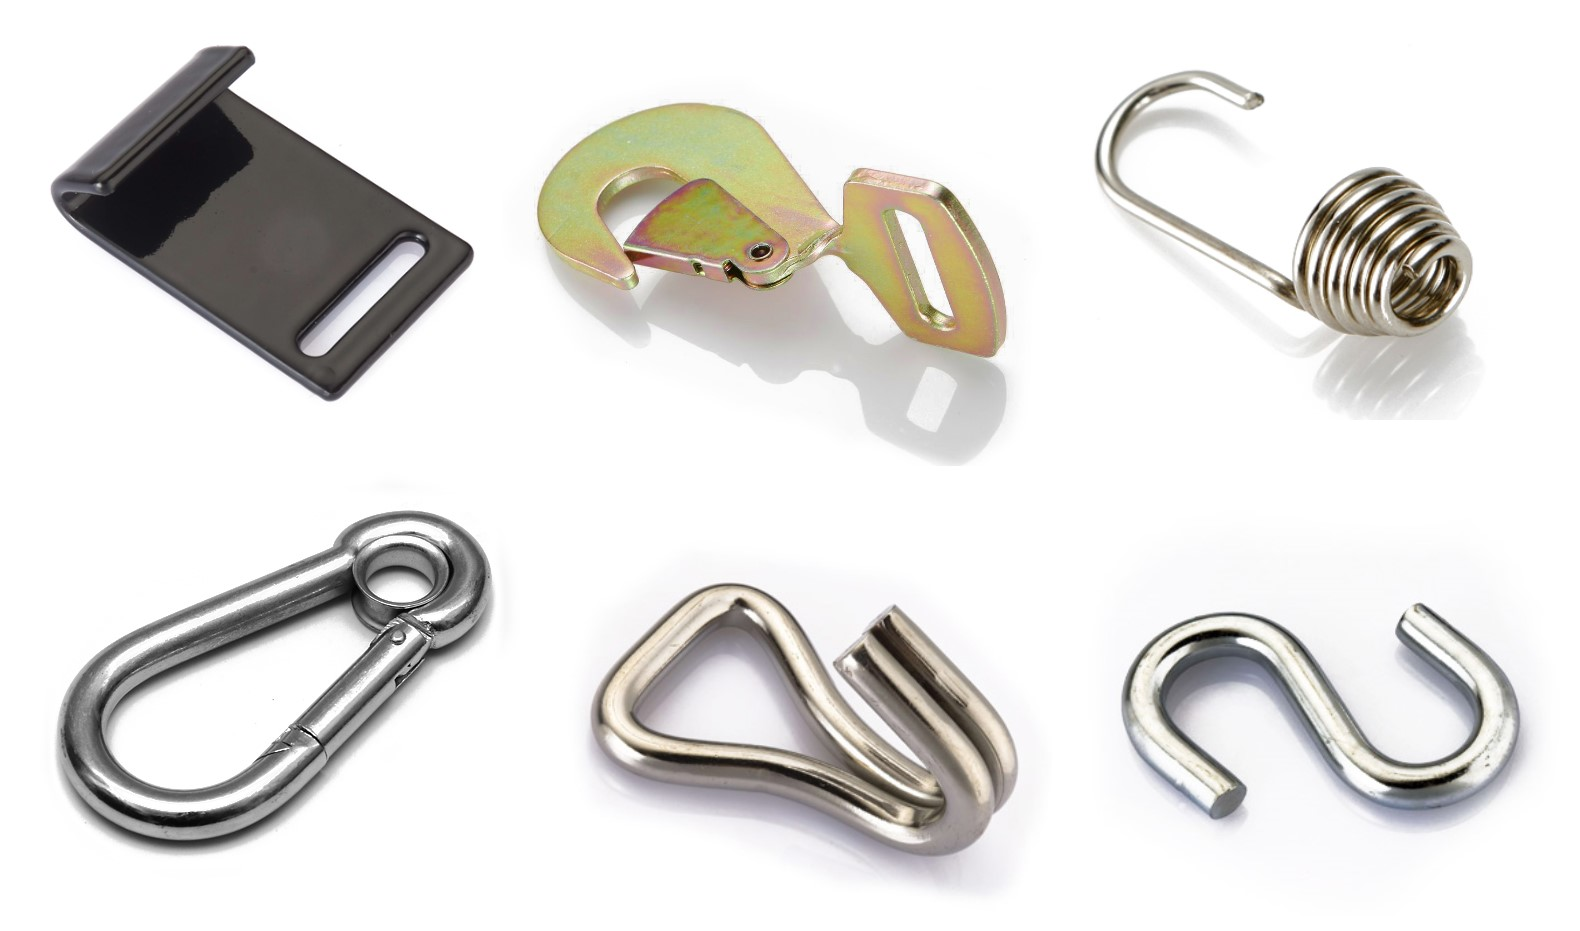 Bus Hook for Auto Exterior Accessories made by Win Chance Metal Co., LTD. 鈞成金屬股份有限公司 - MatchSupplier.com